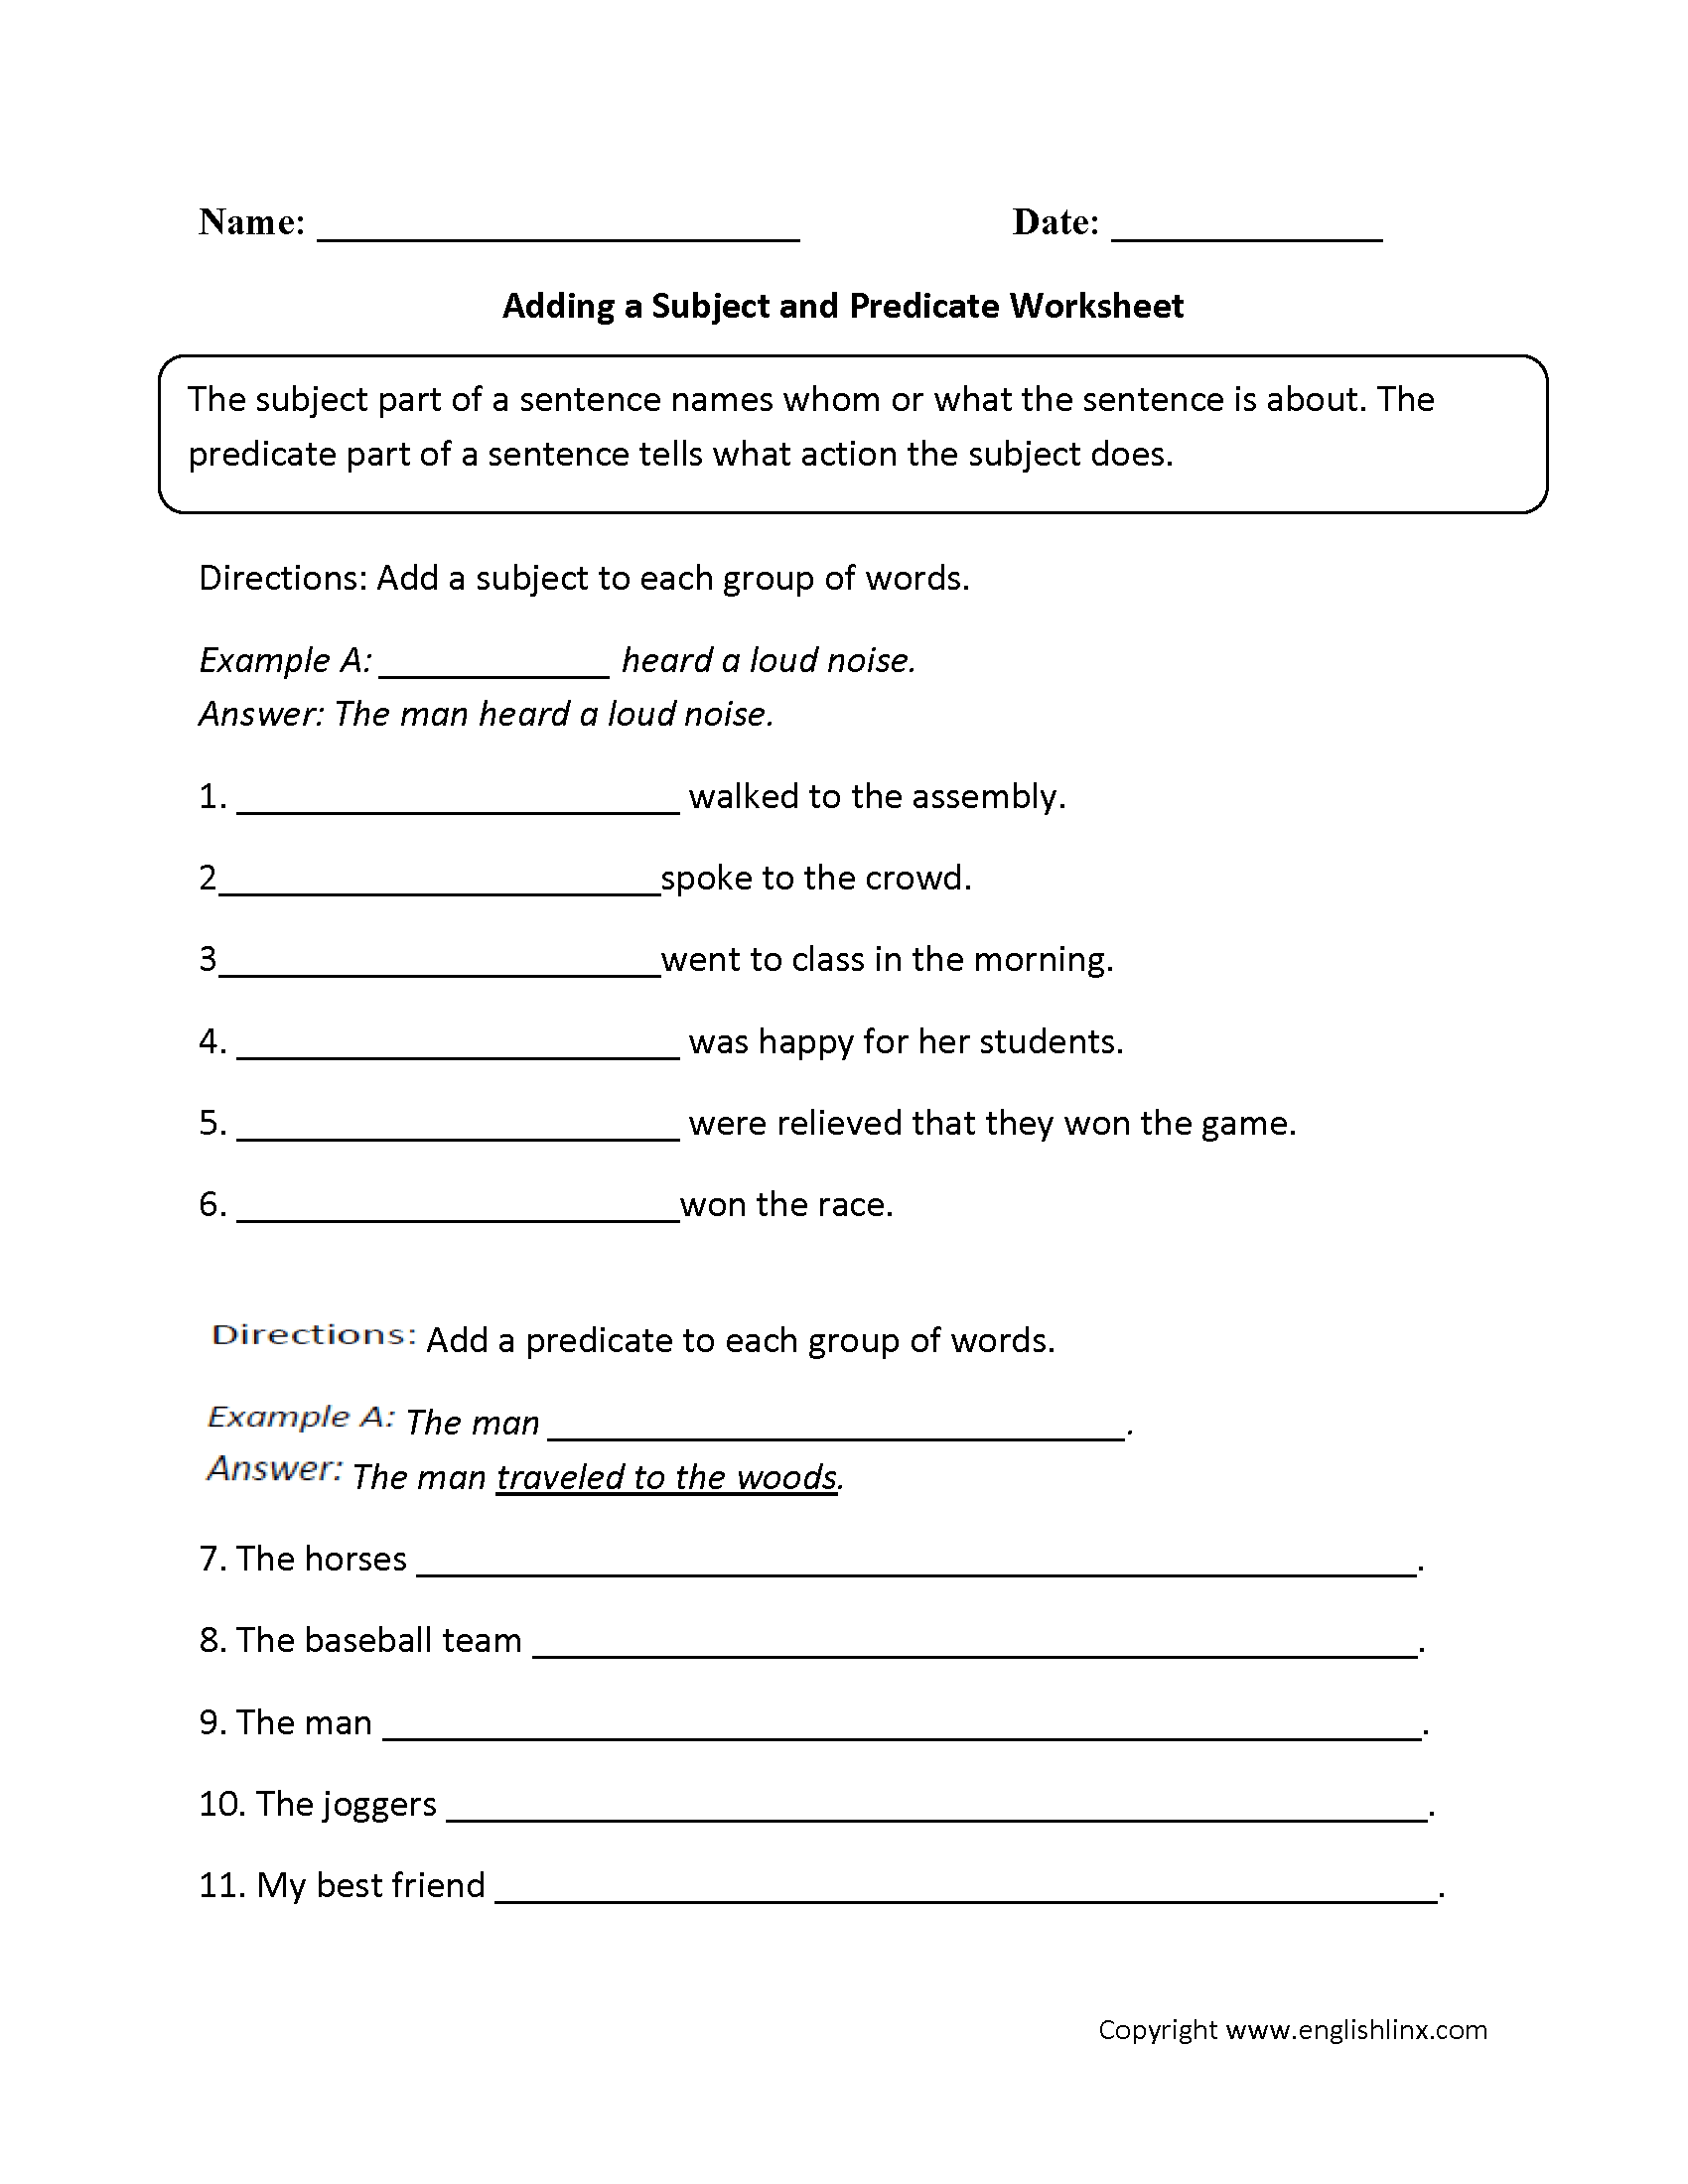 Adding a Subject and Predicate Worksheet | Stuff to Buy | Pinterest